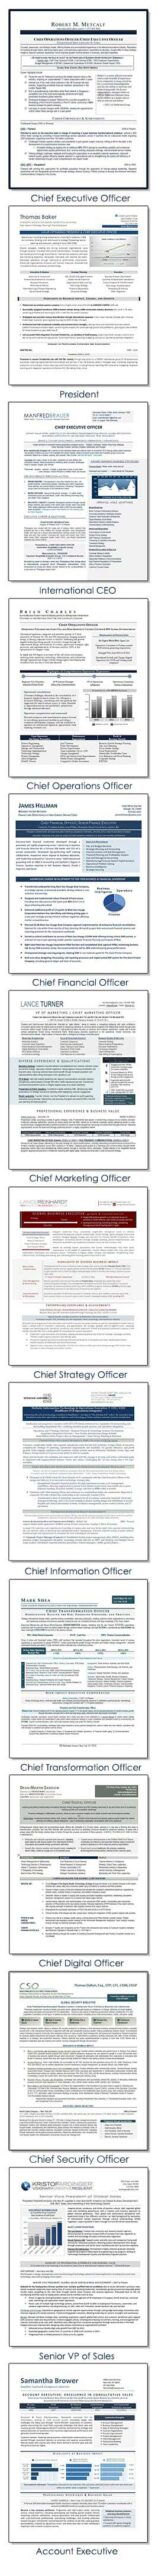 top executive resume writing services in and technical writer reviews new forwarding Resume Technical Resume Writer Reviews